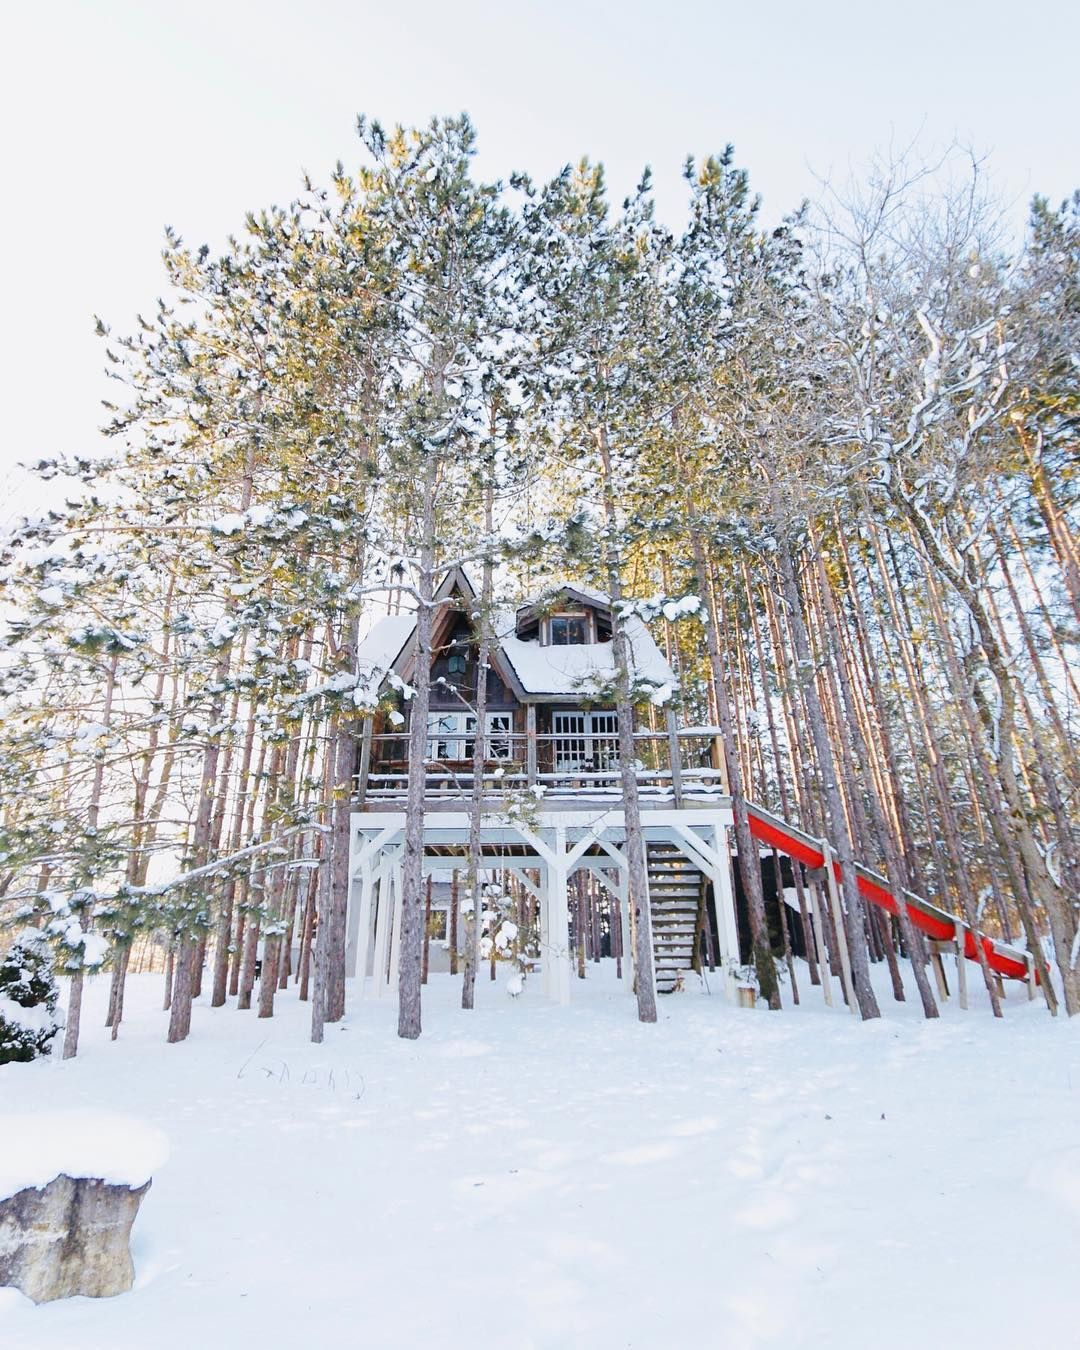 12 Magical Winter Cabins You Can Rent In Ontario For The ...